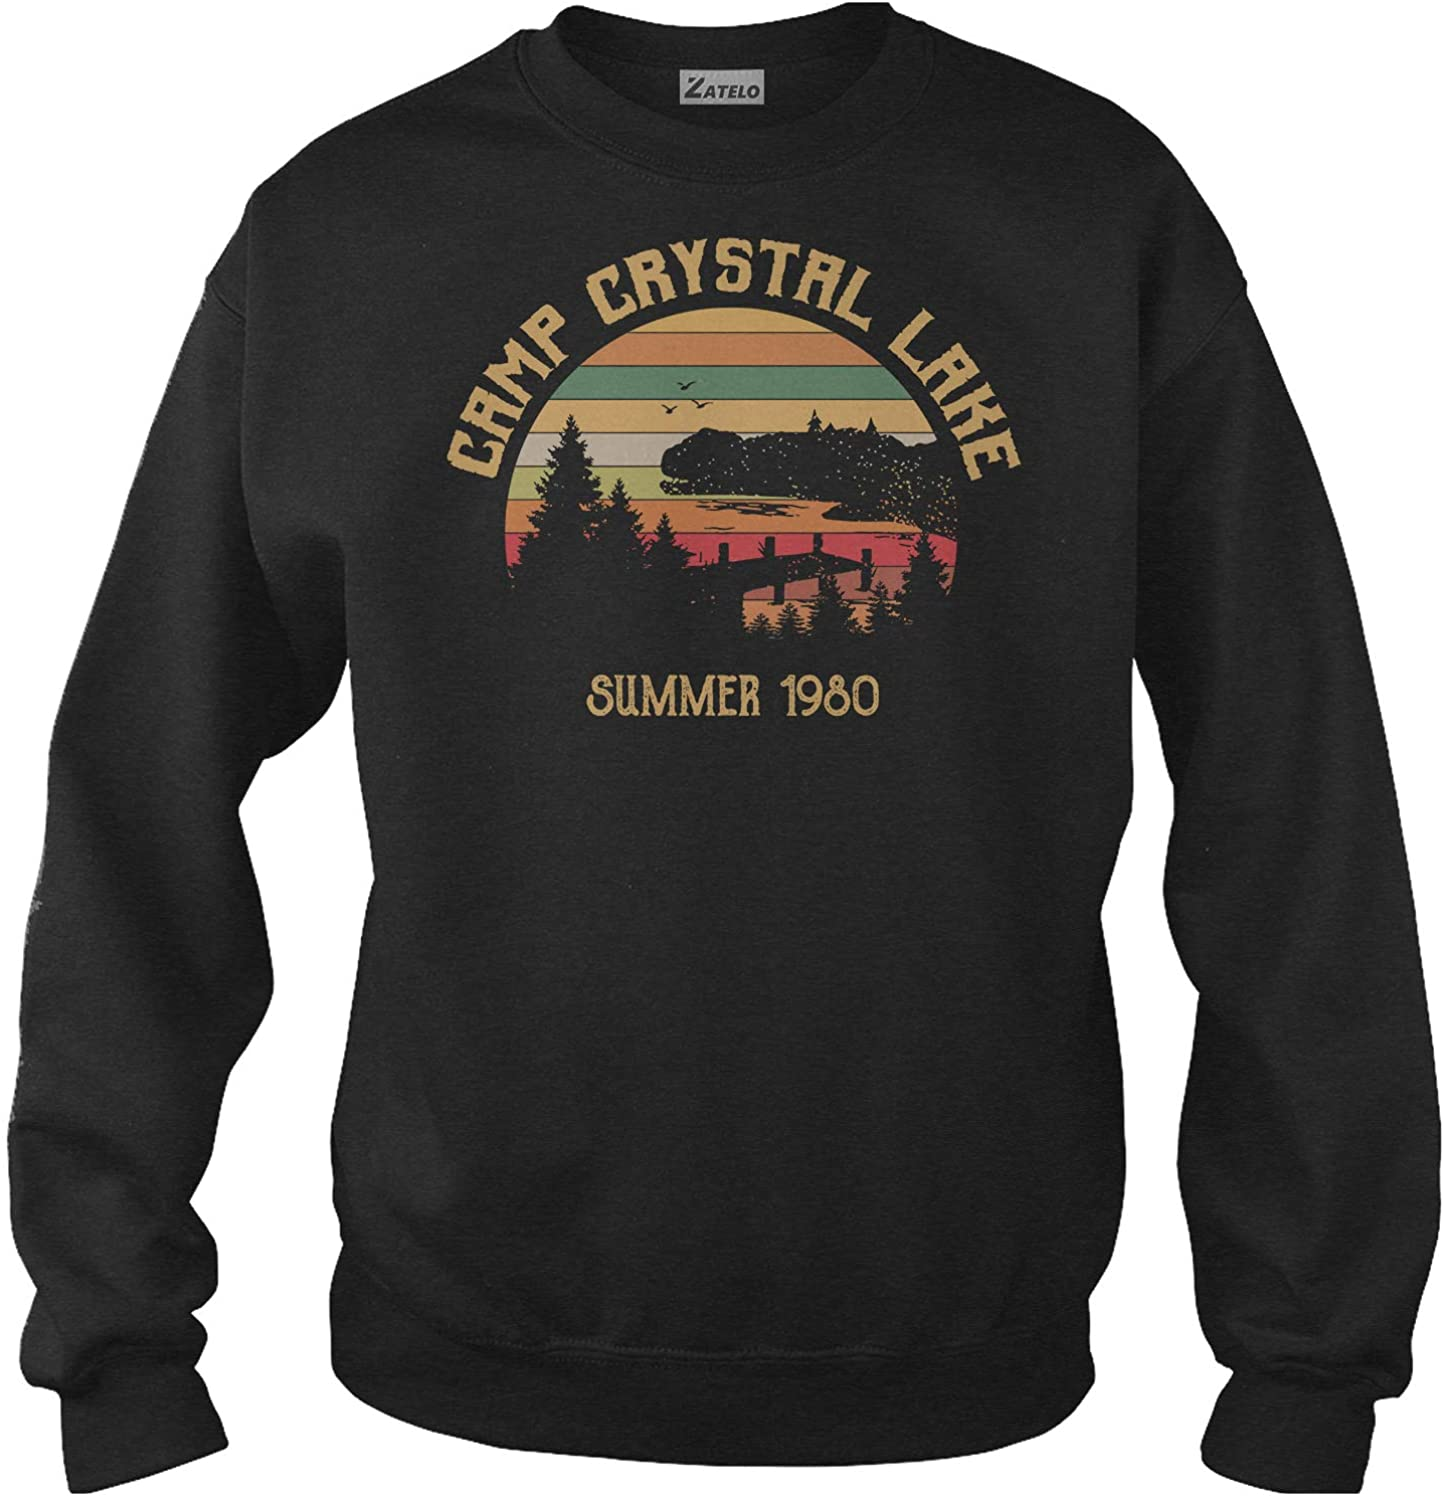 Camp Crystal Lake Summer 1980 - Vintage Retro T-Shirt